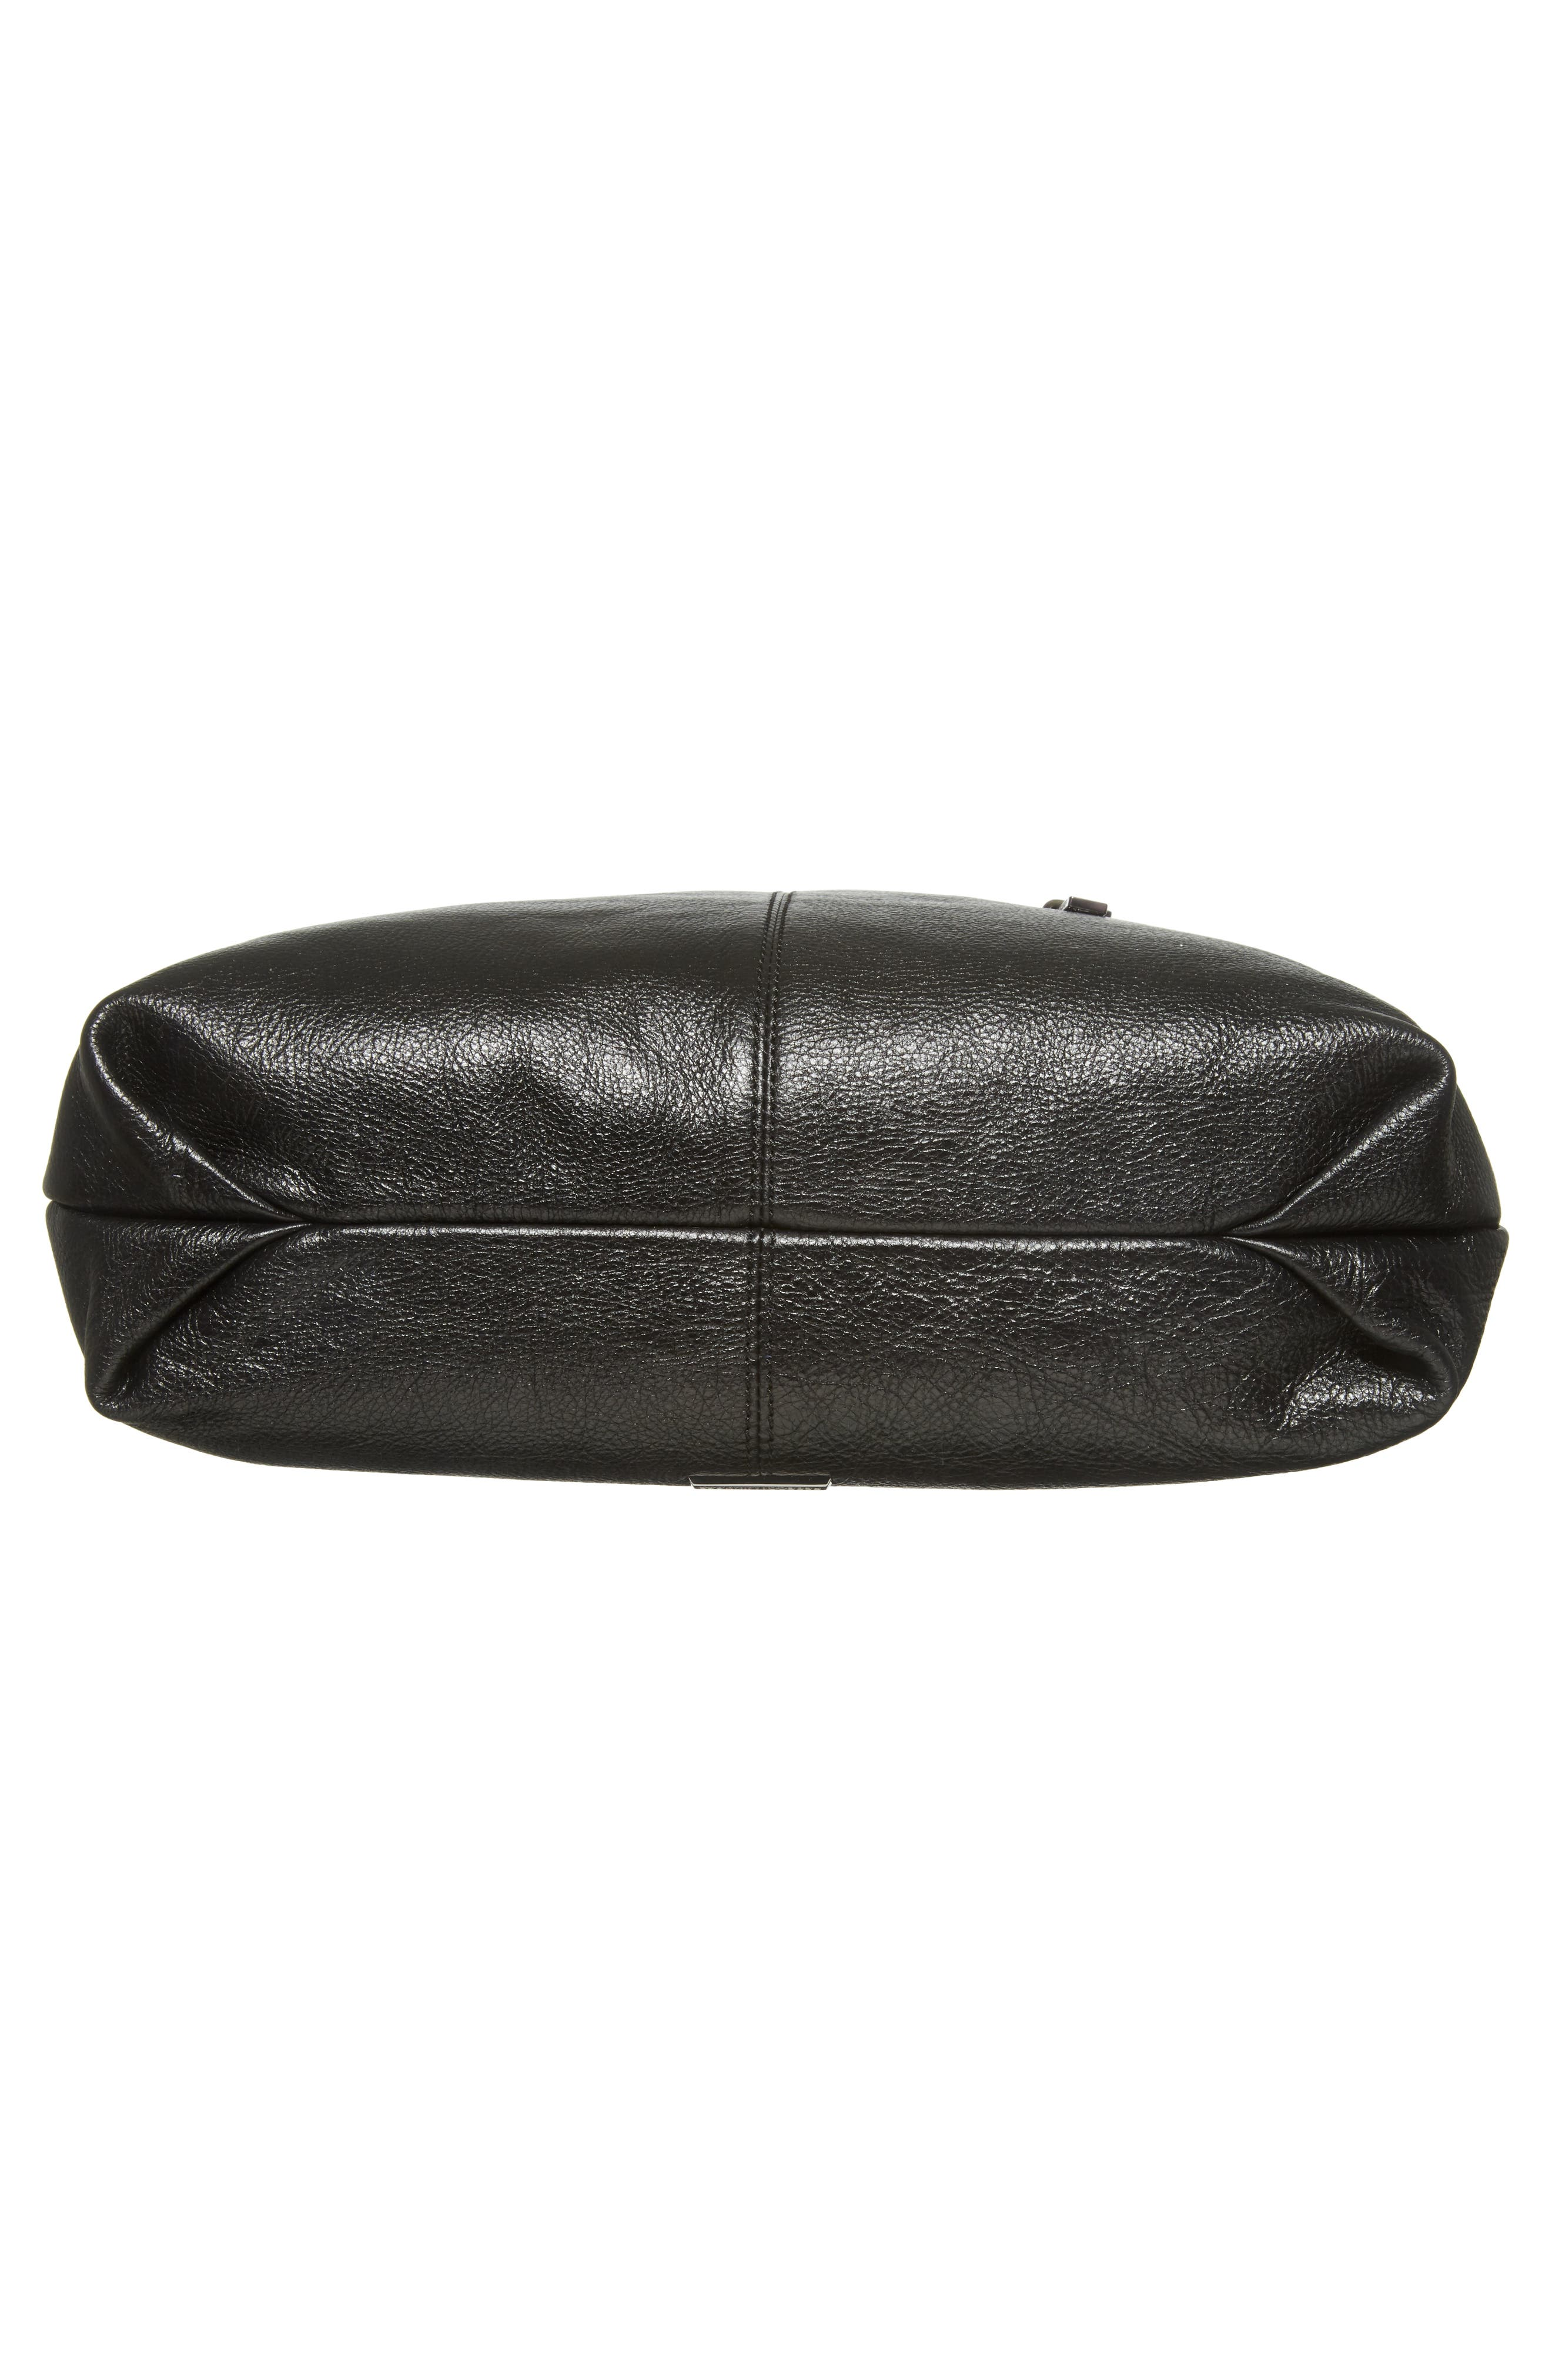 Large Jamie Convertible Leather Hobo,                             Alternate thumbnail 7, color,                             001